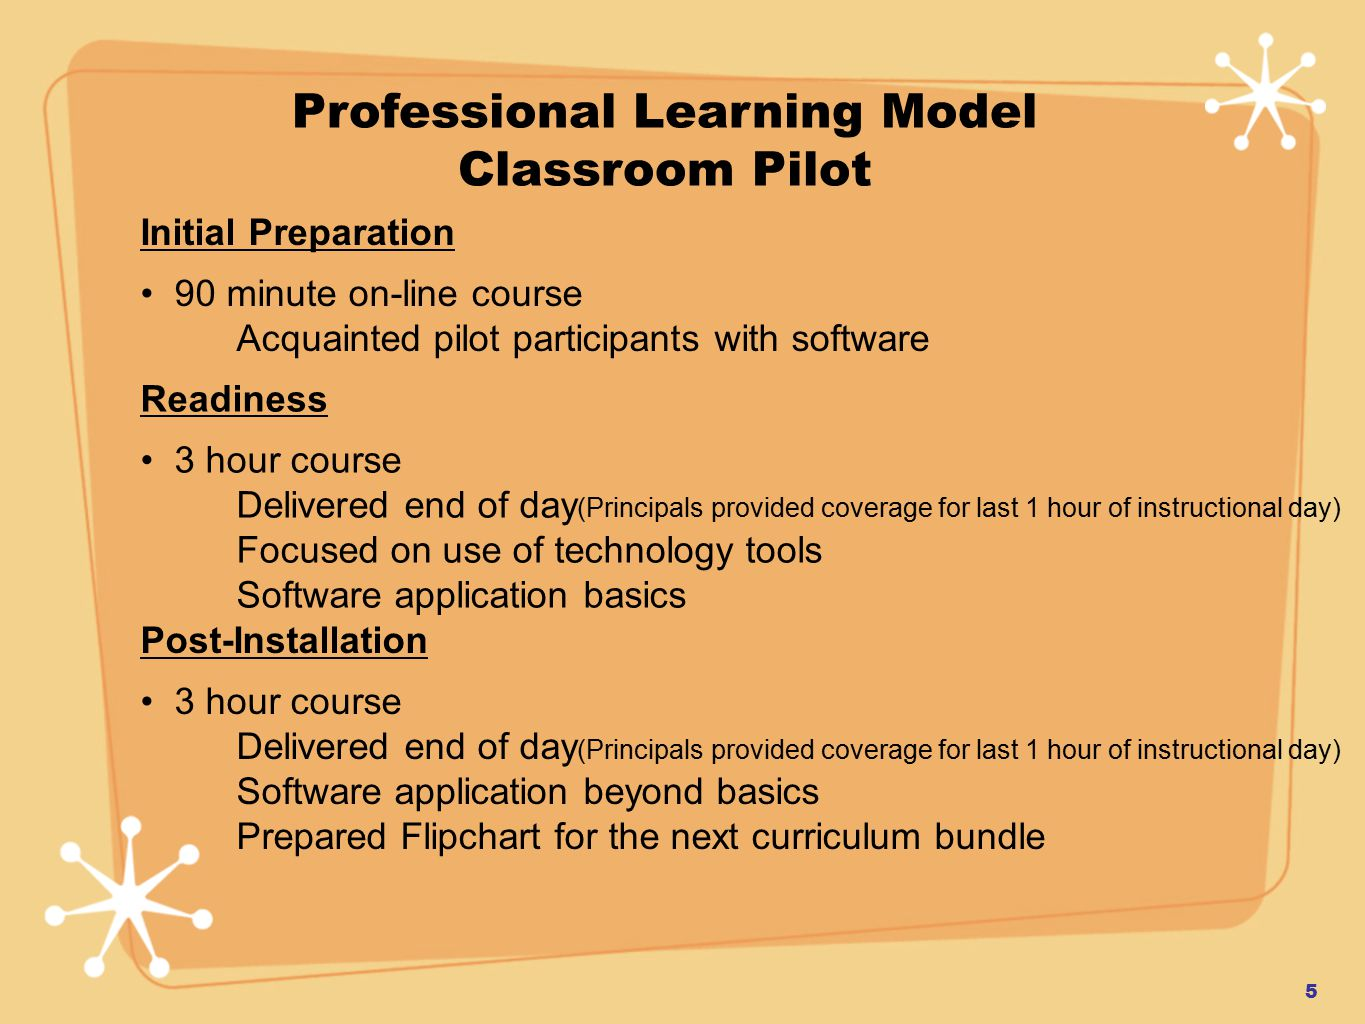 Monthly Cohorts Professional Learning Model Tandem leadership support by: Curriculum Coordinator -Content Expert Instructional Technologist -Skill/Integration Expert Focus On-going collaborative learning and sharing Created flipcharts connected to curriculum Repository = 900+ Formed by grade level or subject area I really didn't think that meeting together was necessary, but now I look forward to working within my Cohort.